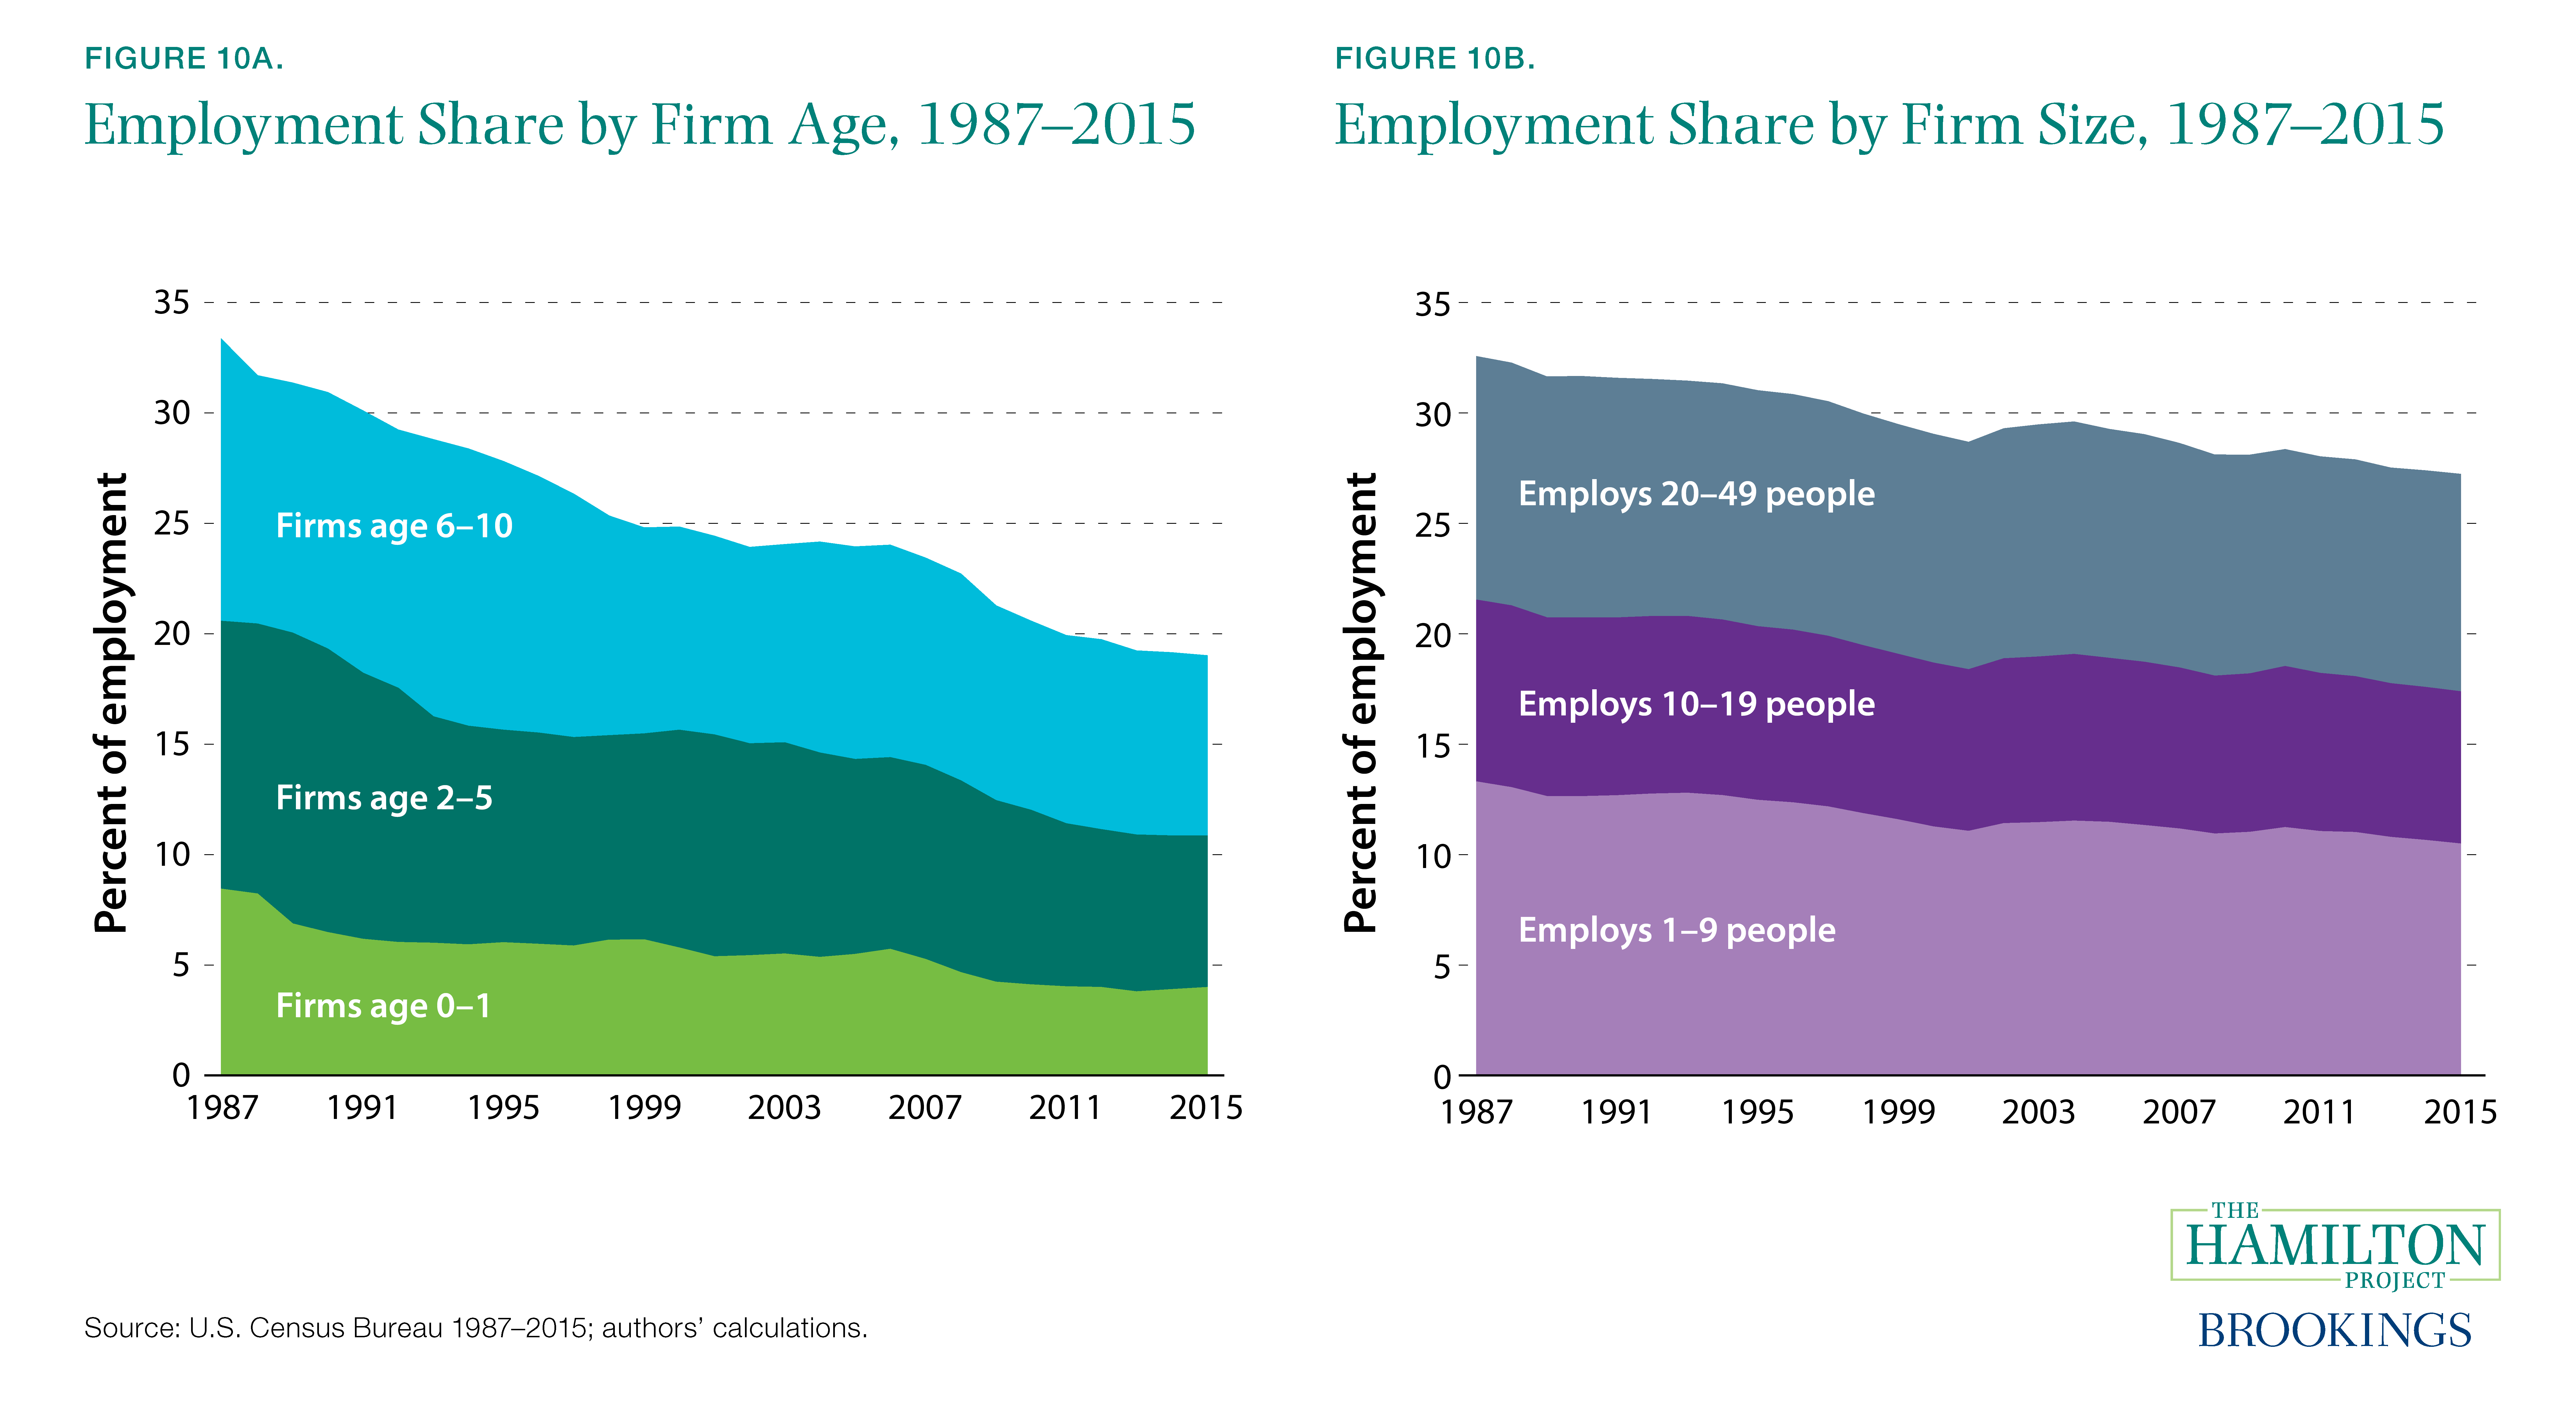 Figure 10A. Employment Share by Firm Age, 1987–2015 and Figure 10B. Employment Share by Firm Size, 1987–2015